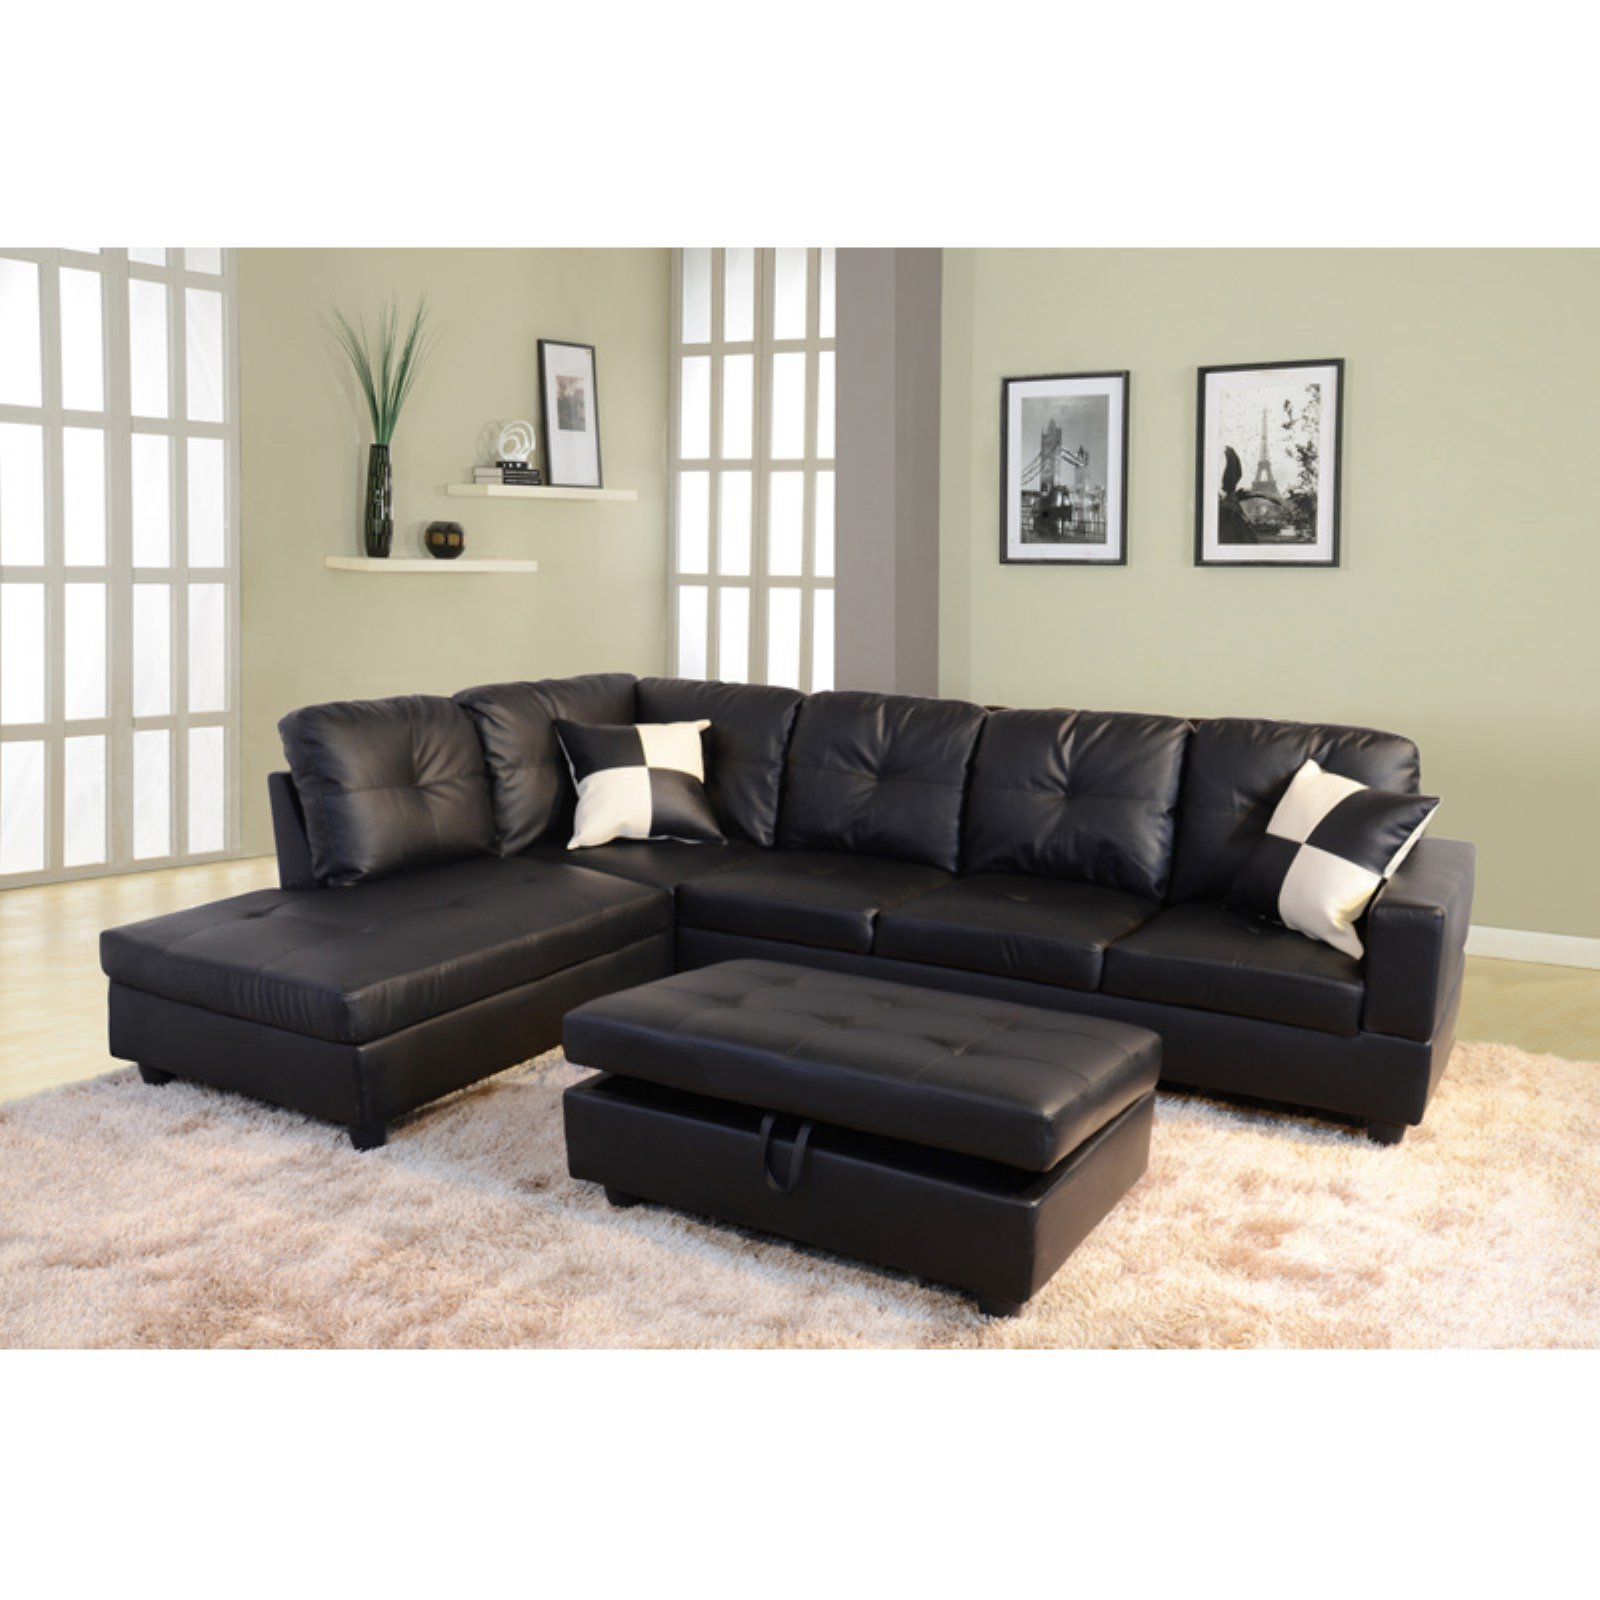 Beverly Fine Furniture 3 Piece Faux Leather Sectional Sofa Set With Storage  Ottoman